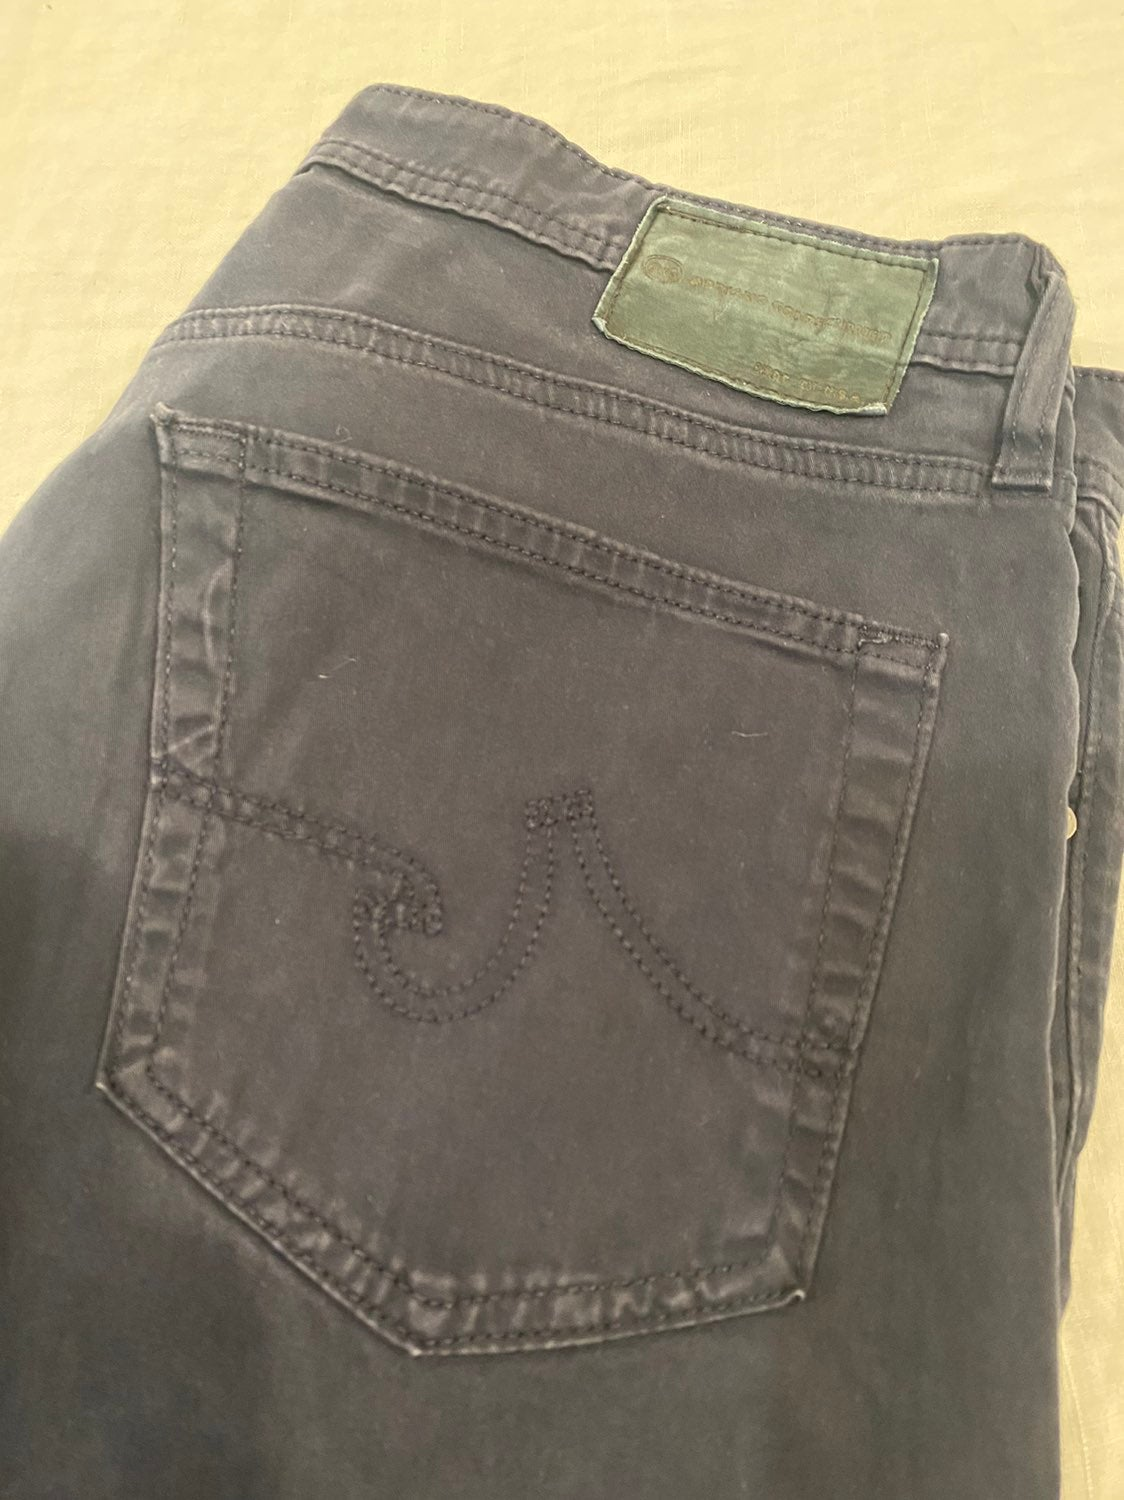 AG Adriano Goldschmied Protege Pants 34